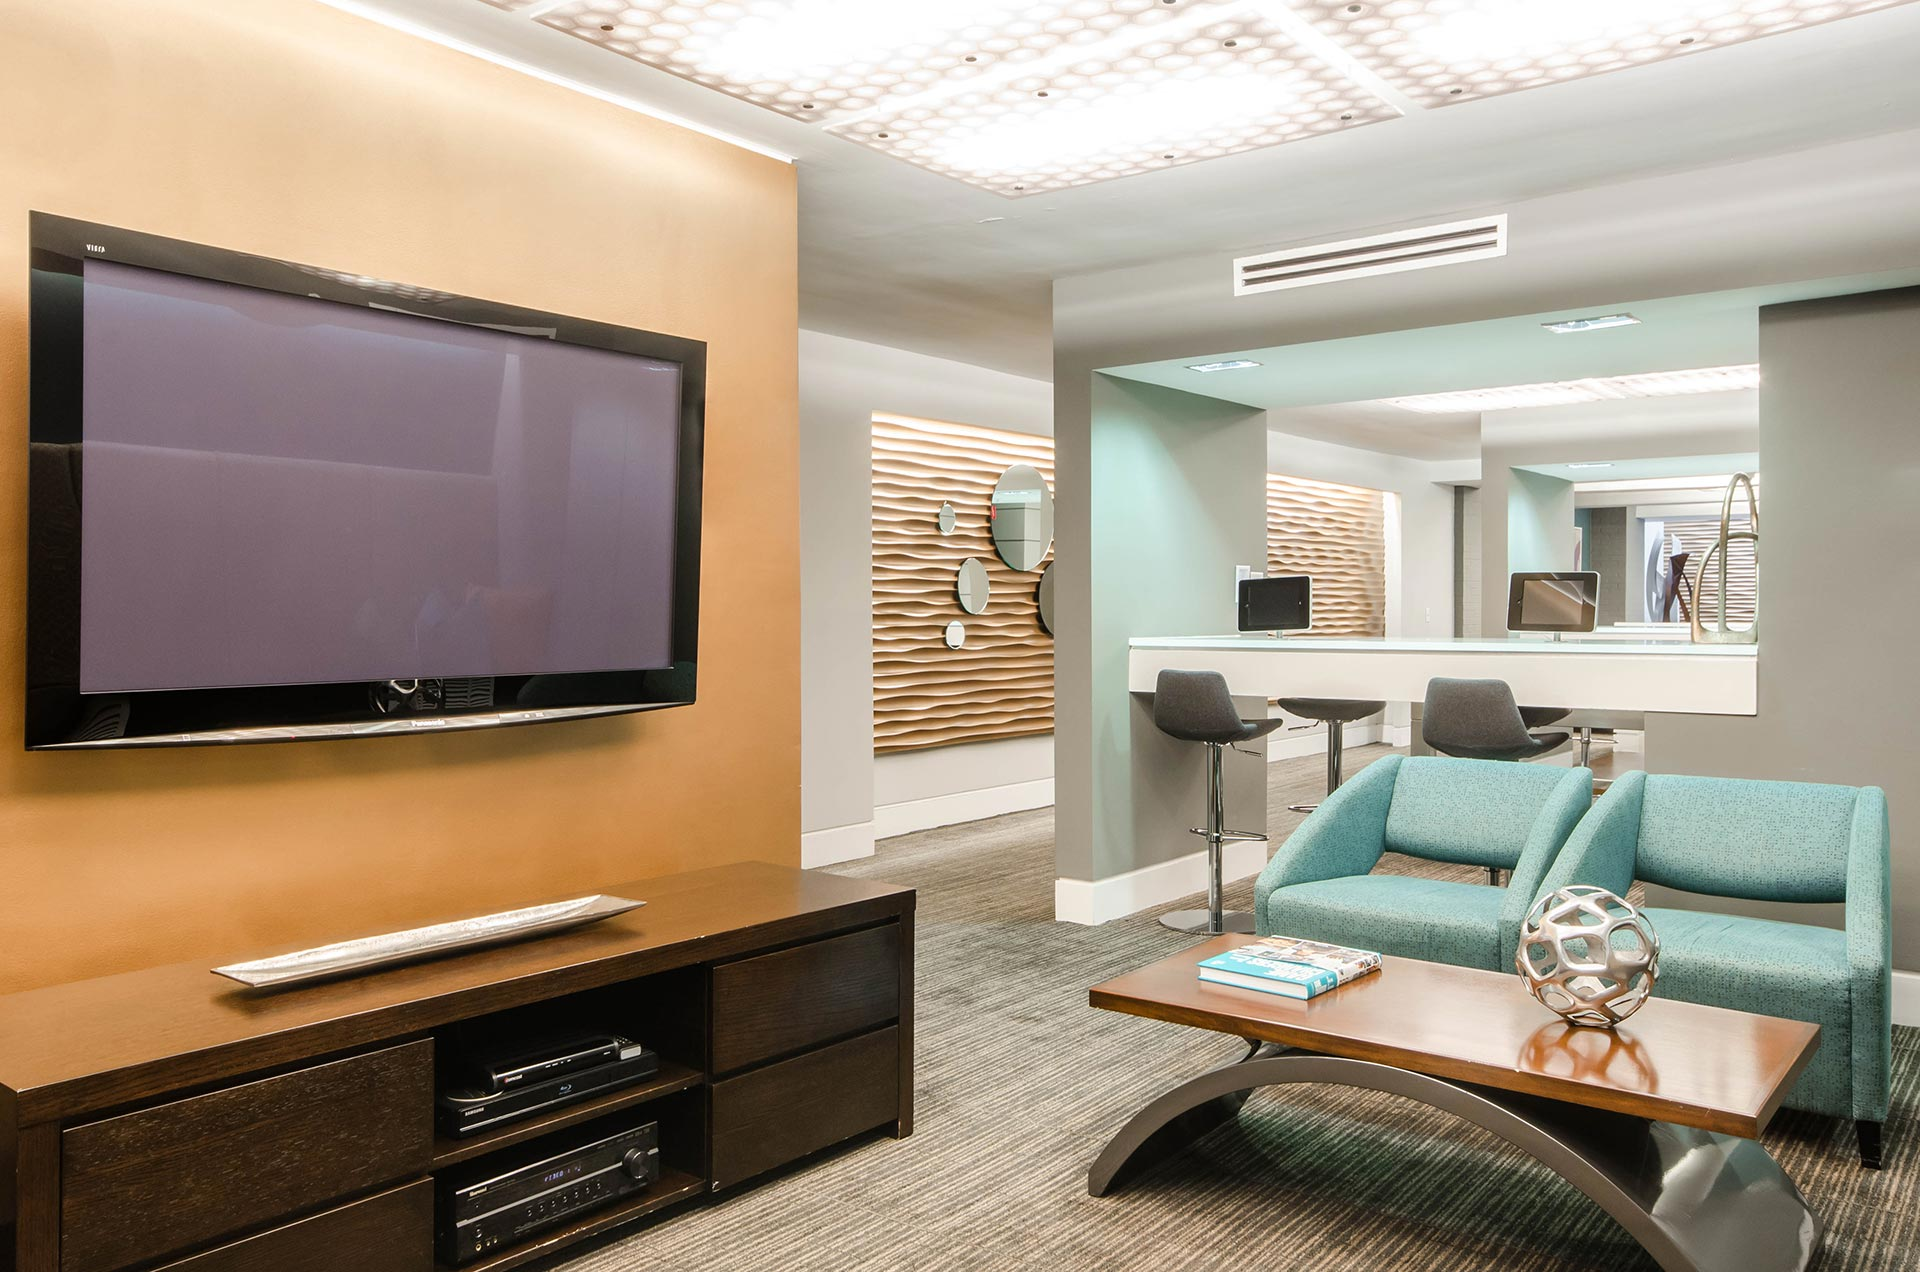 Brightly lit entertainment center with large TV and armchairs